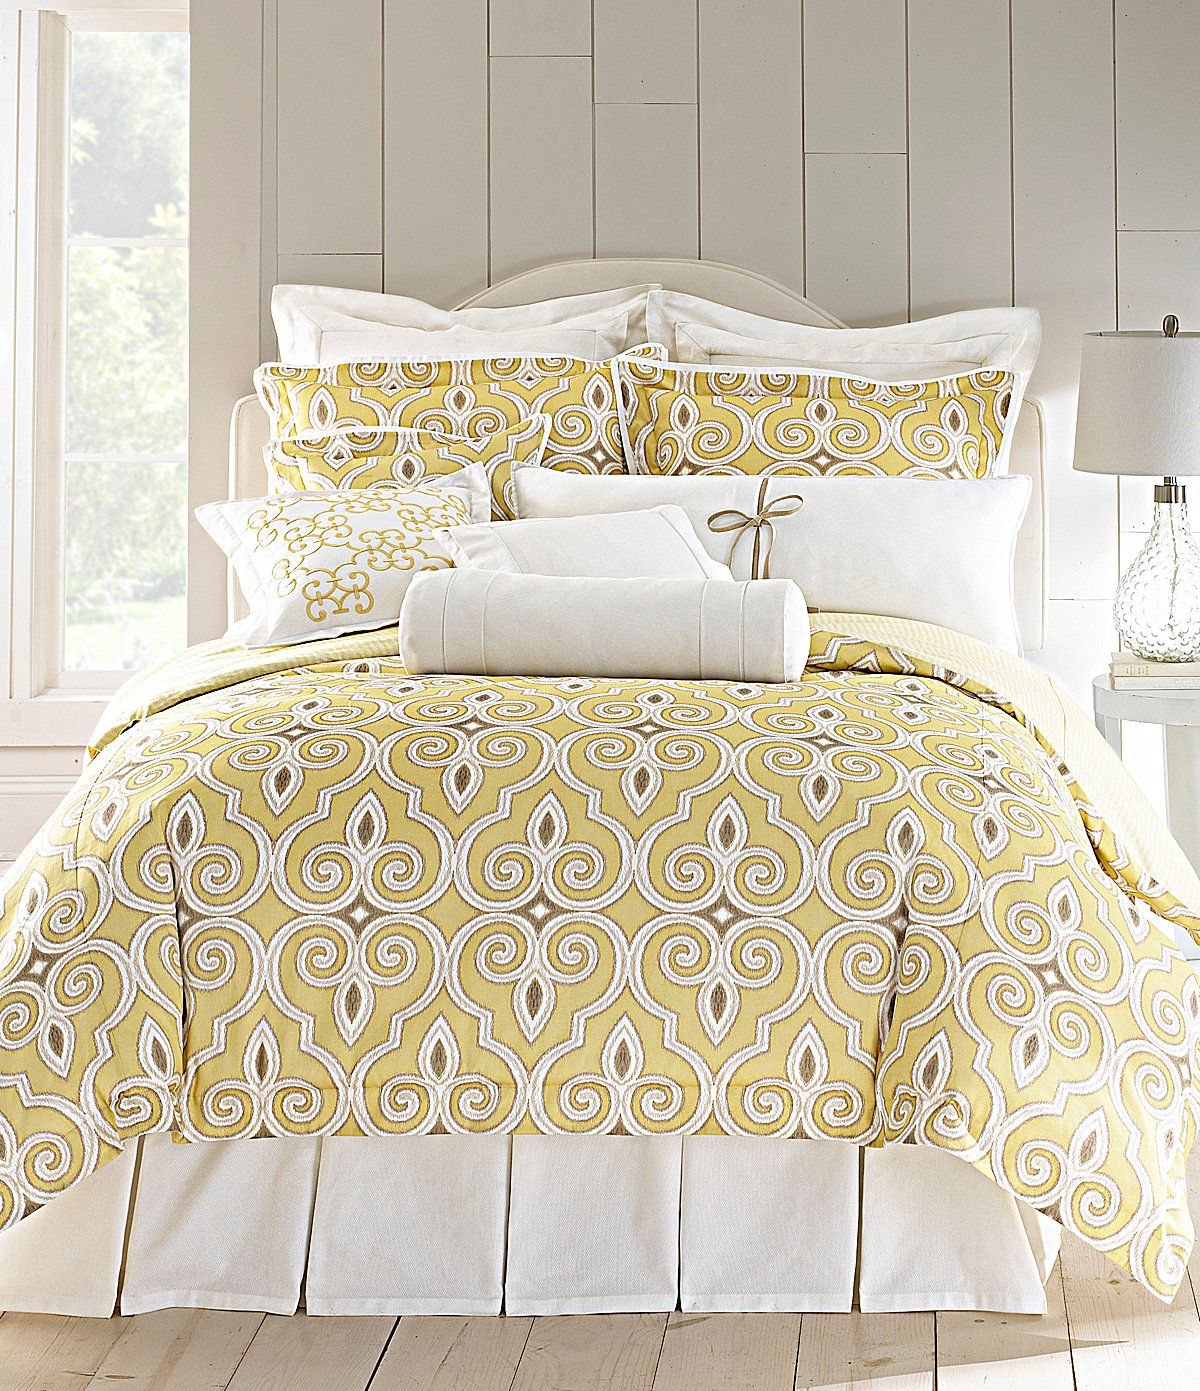 Southern Living Bedding : Southern Living Garden Gate Bedding Collection  Dillards ...